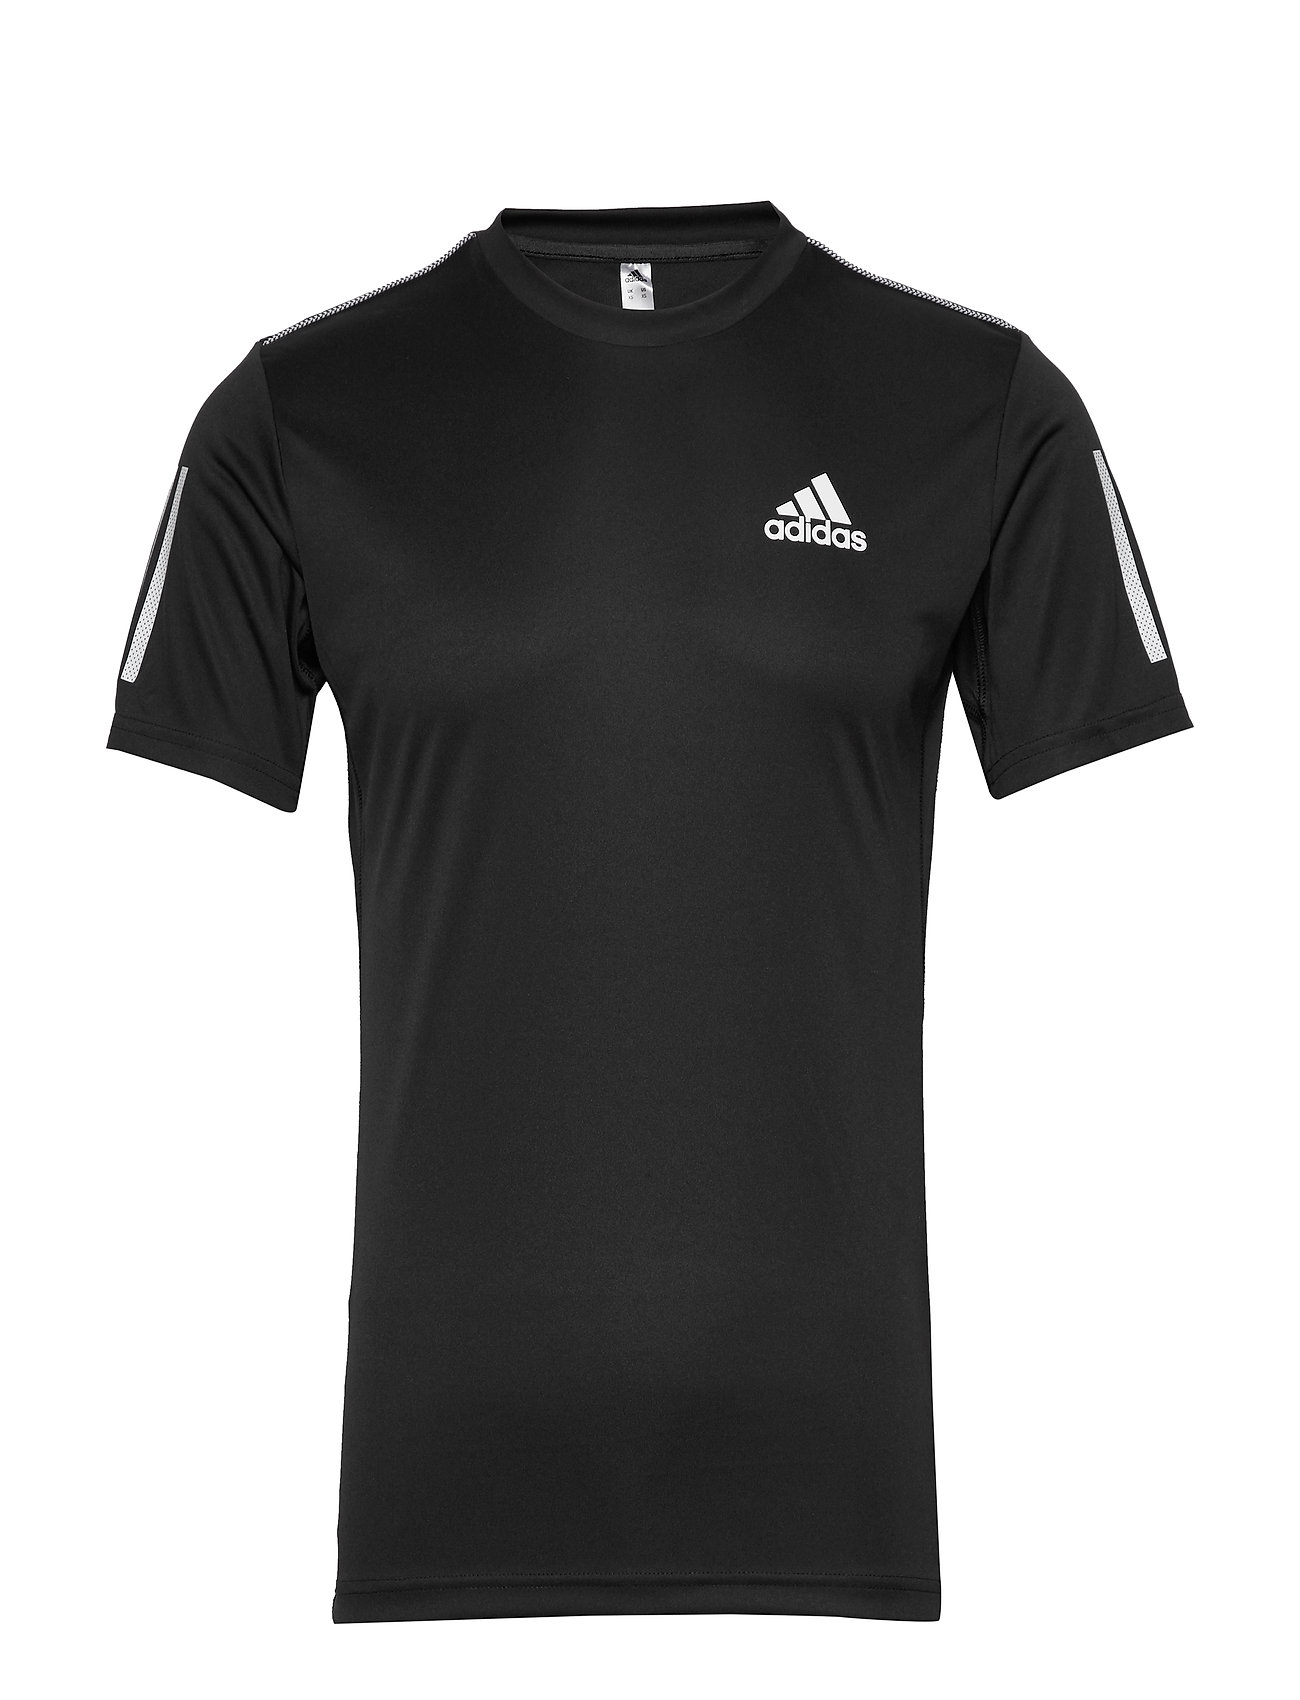 adidas Tennis CLUB 3 STRIPES TEE M - BLACK